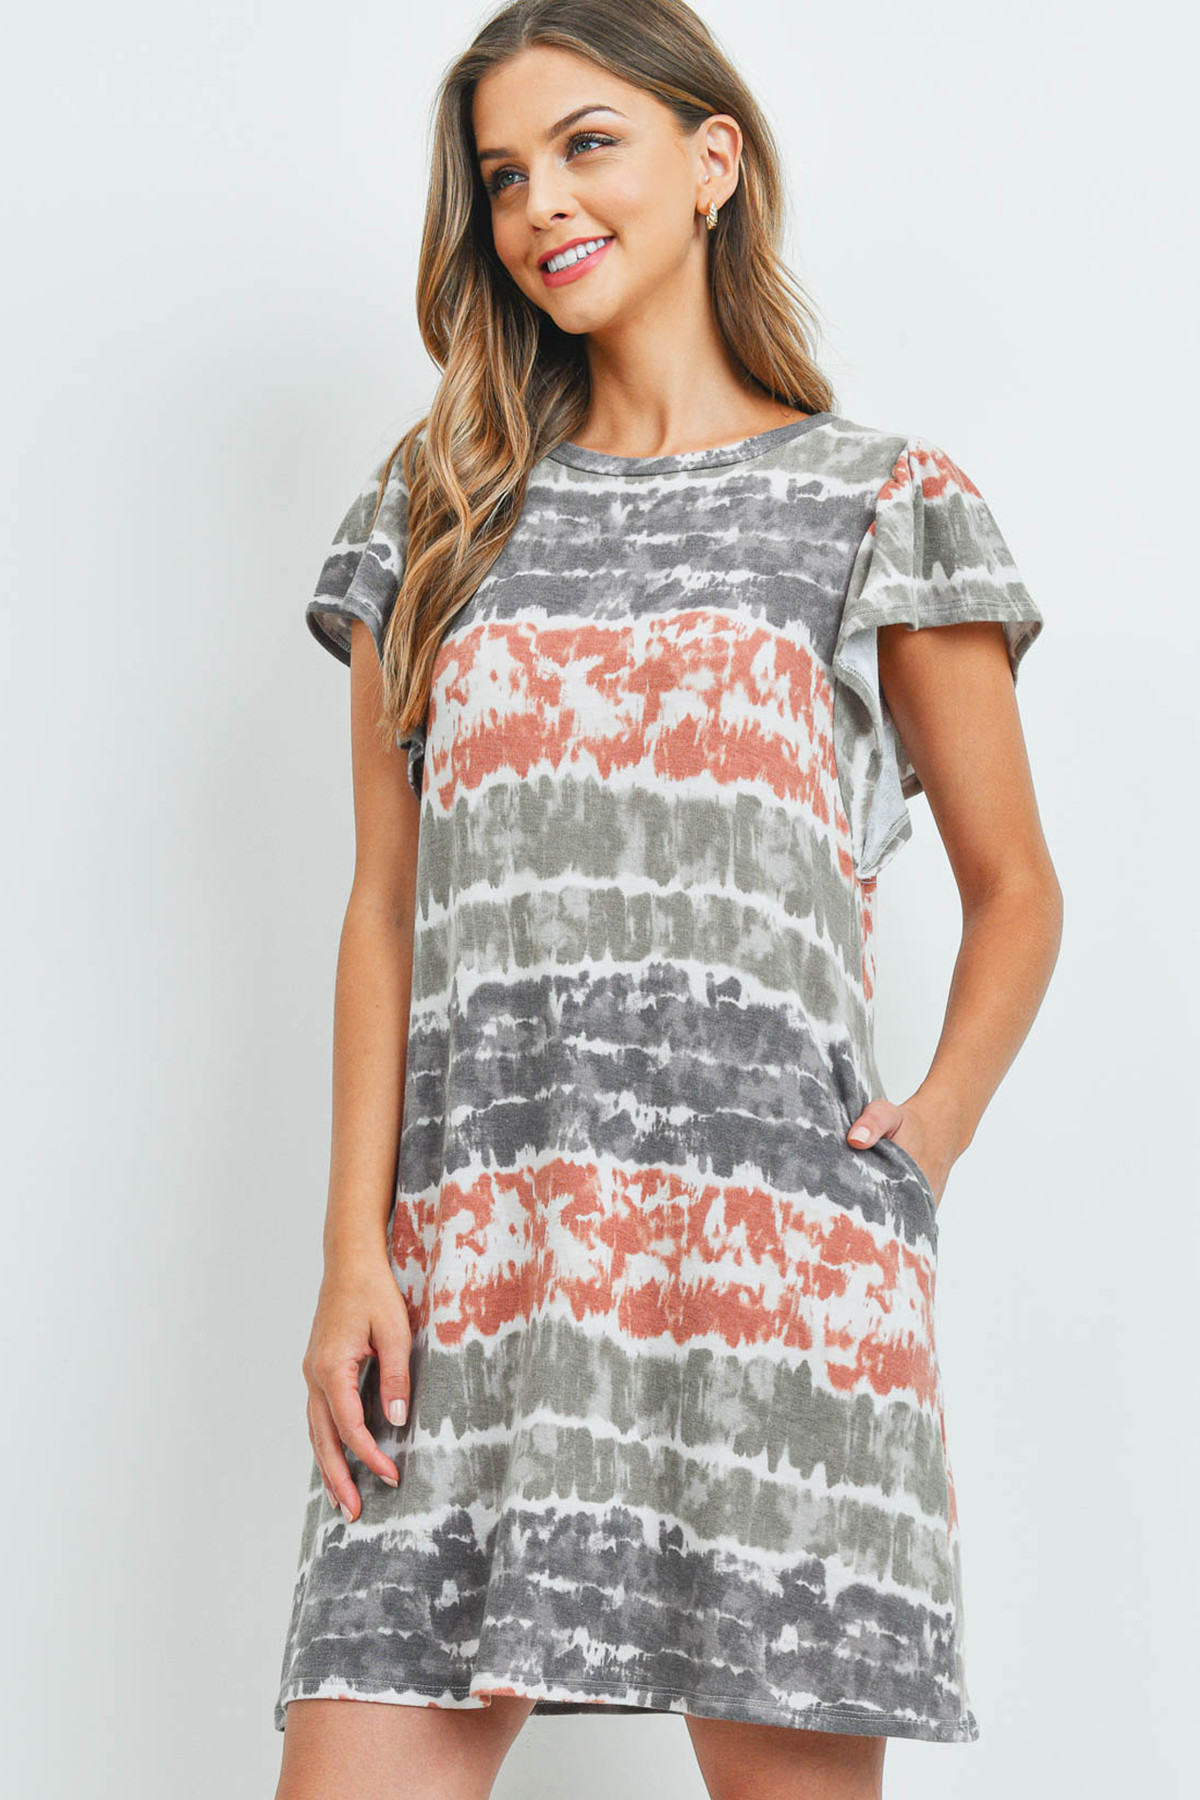 S9-17-2-PPD1021-RSTOV - TIE DYE FLUTTER SLEEVES ON SEAM POCKET DRESS- RUST/OLIVE 1-2-2-2